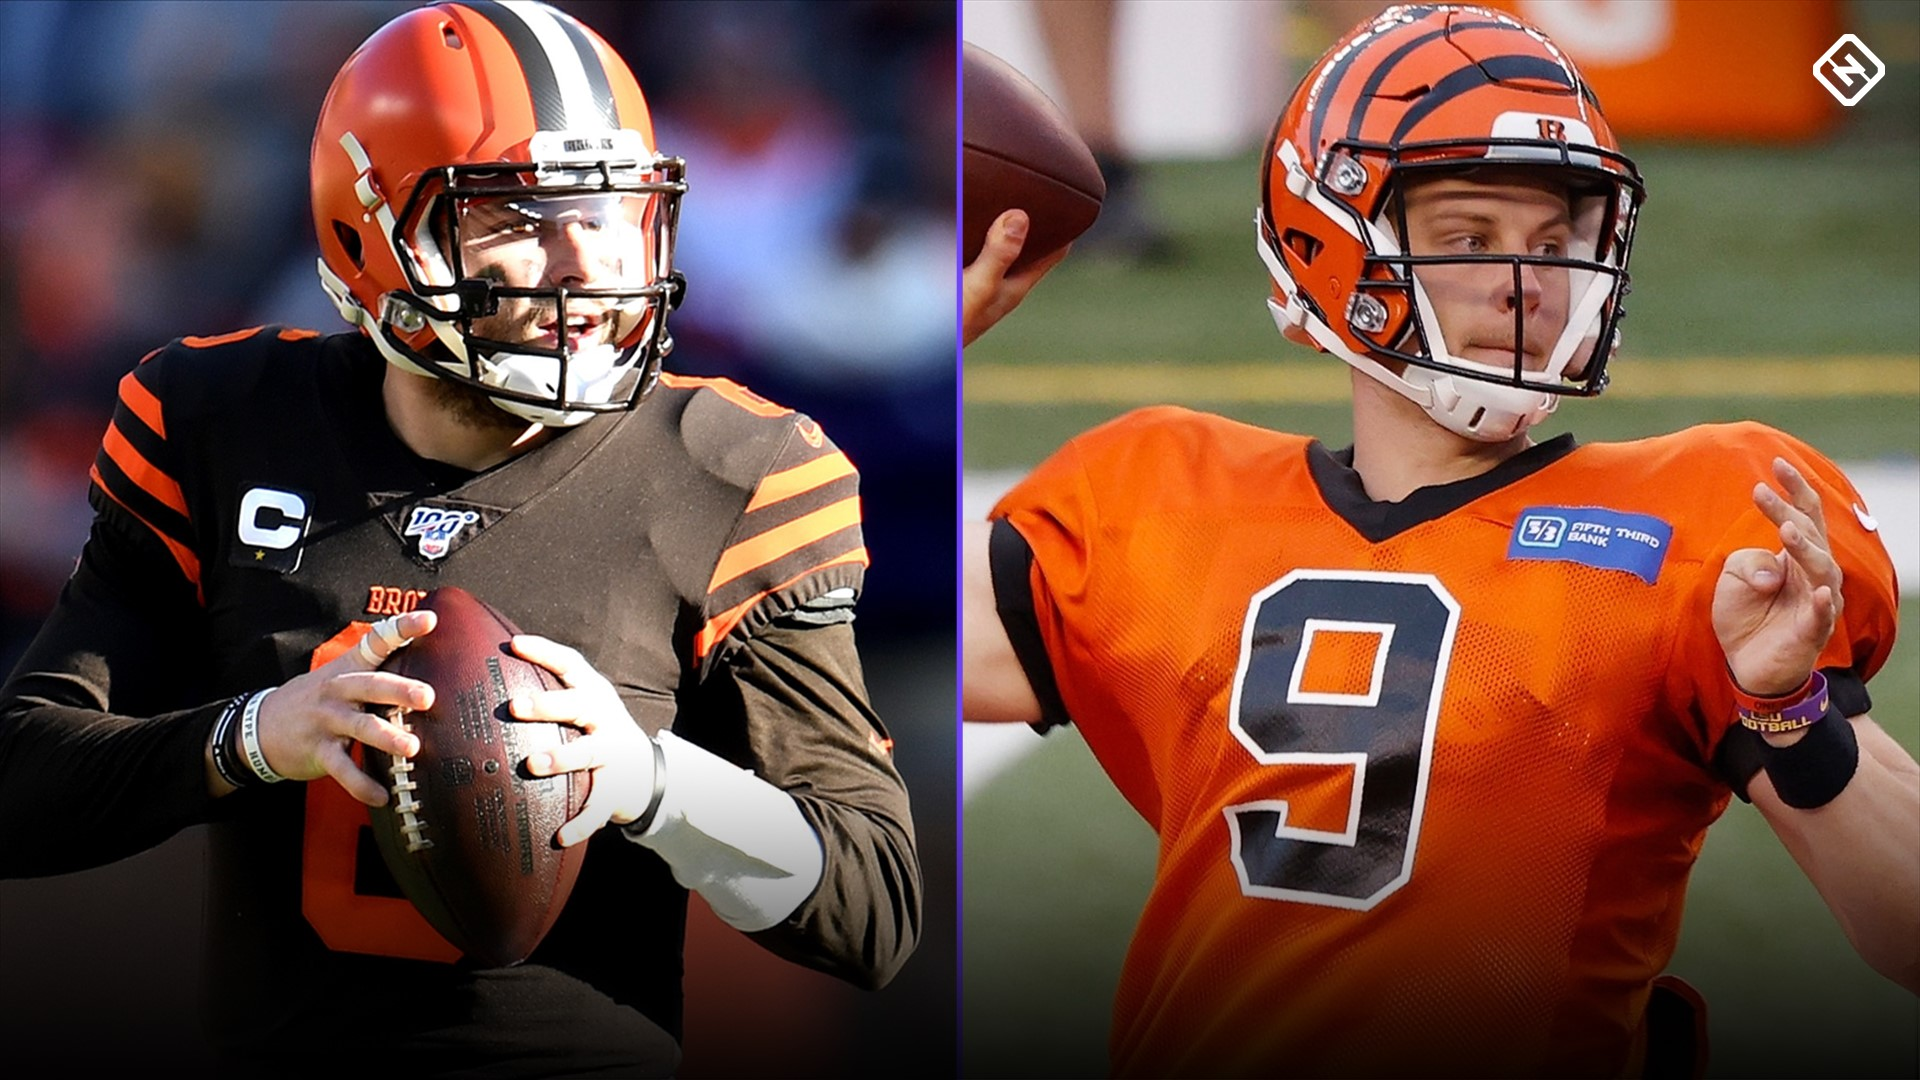 Bengals vs. Browns odds, prediction, betting trends for NFL's 'Thursday Night Football'